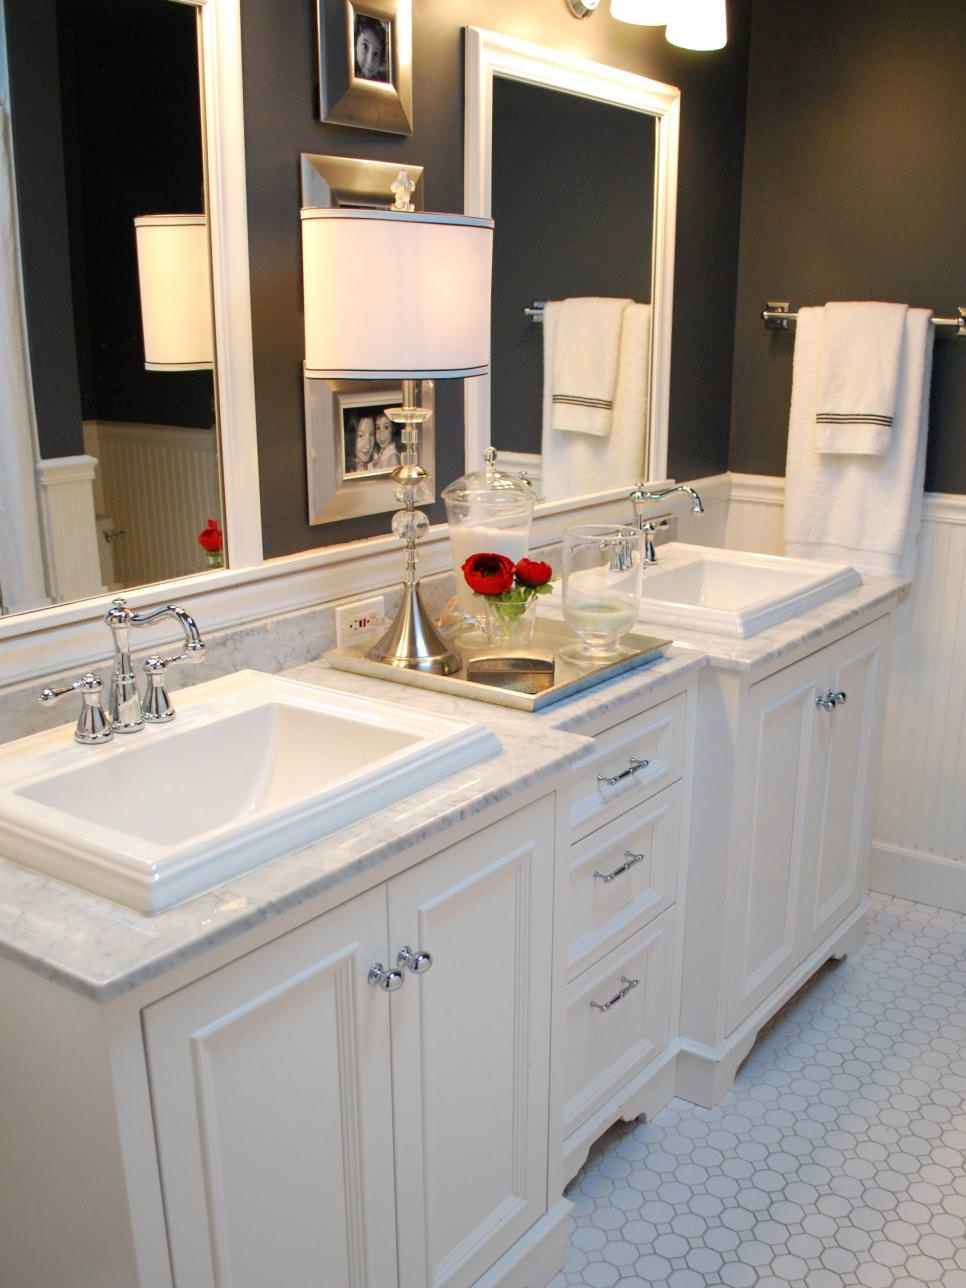 24 double bathroom vanity ideas bathroom designs for Bathroom ideas vanity